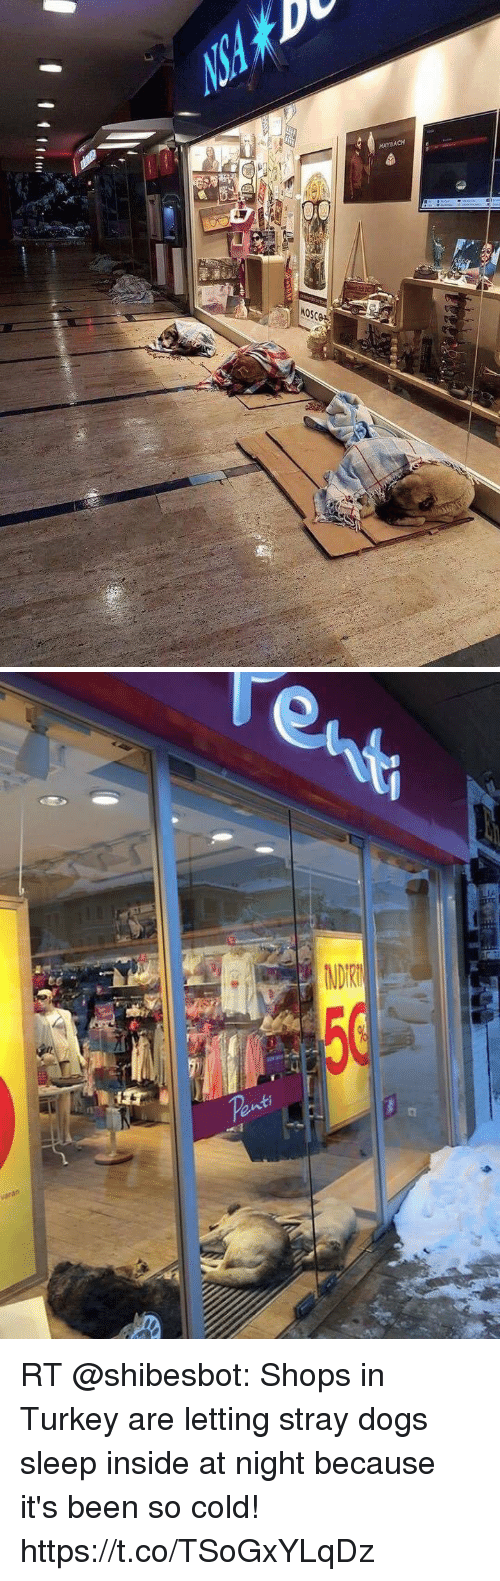 Turkeyism: RT @shibesbot: Shops in Turkey are letting stray dogs sleep inside at night because it's been so cold! https://t.co/TSoGxYLqDz